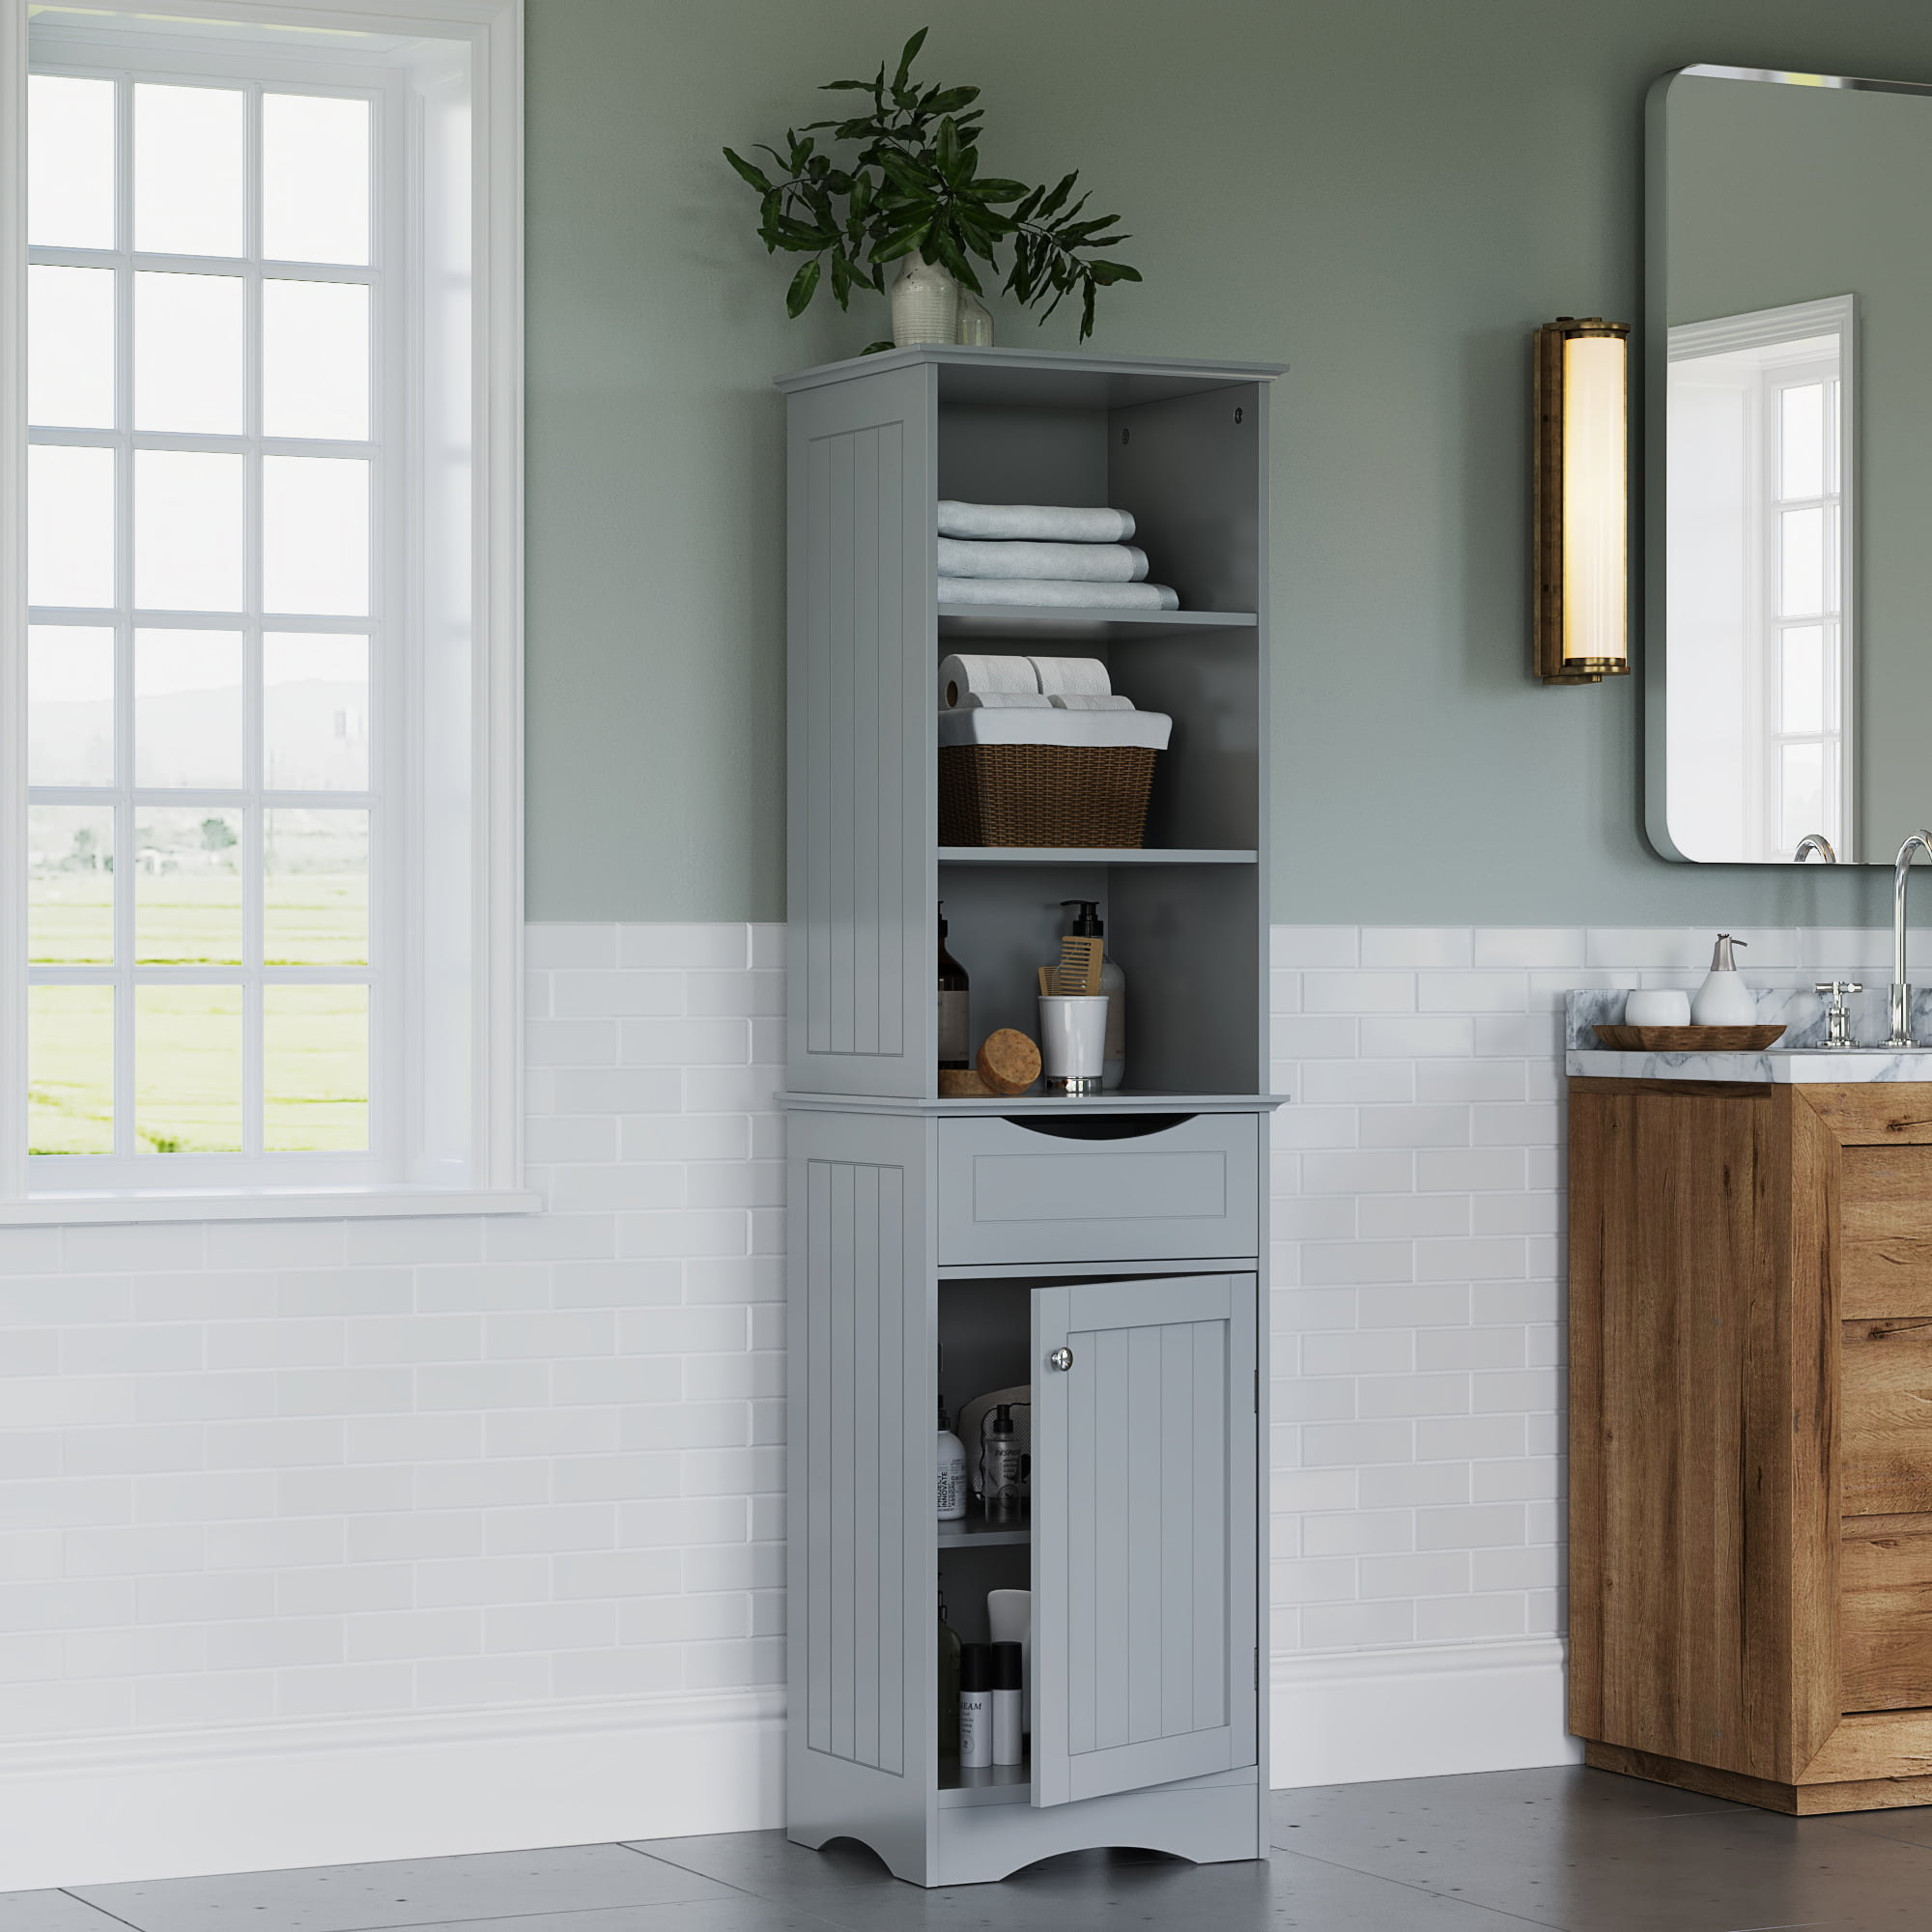 RiverRidge Ashland Collection Tall Linen Cabinet for ...